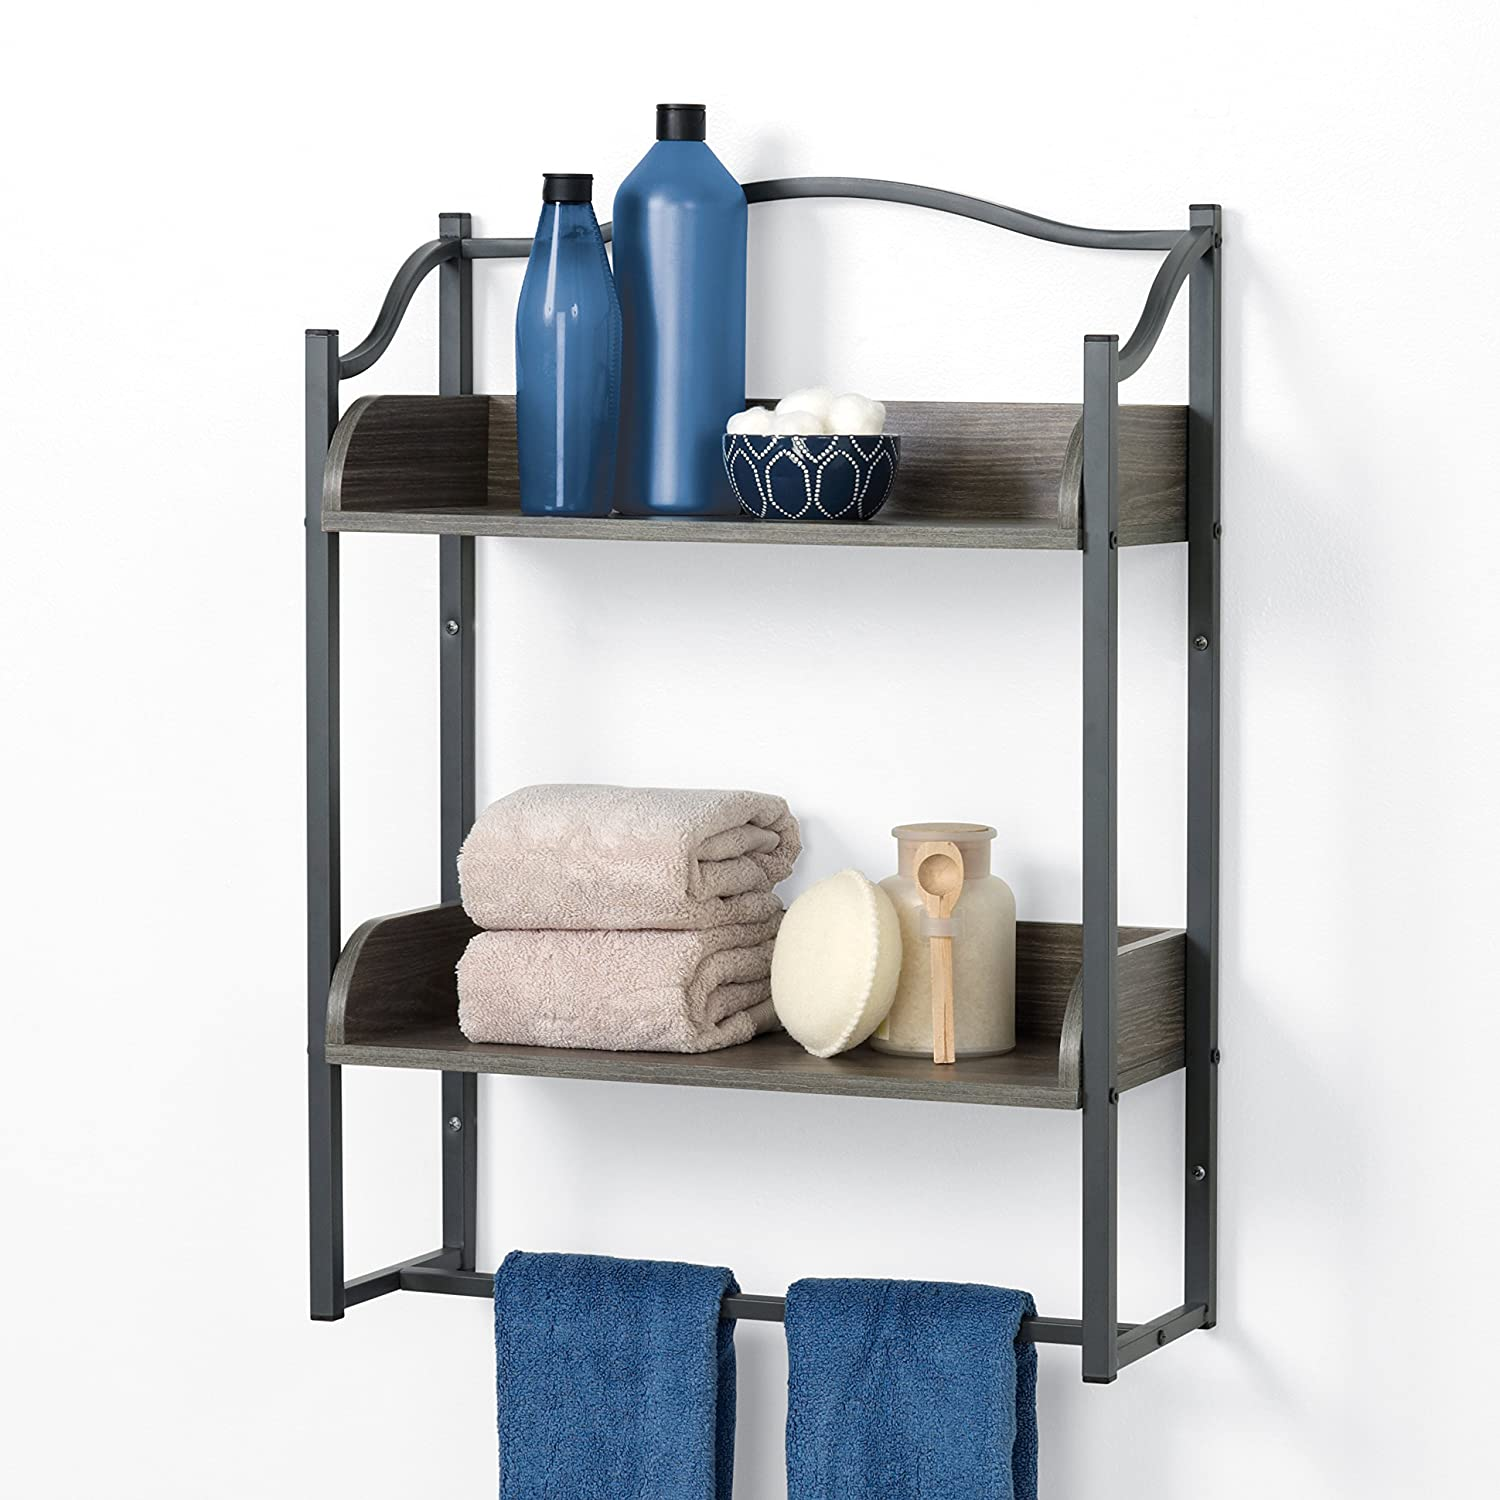 Driftwood Gray//Pewter Zenith Home Corp 8765GY Zenna Home 3-Tier Over-The-Toilet Bathroom Spacesaver